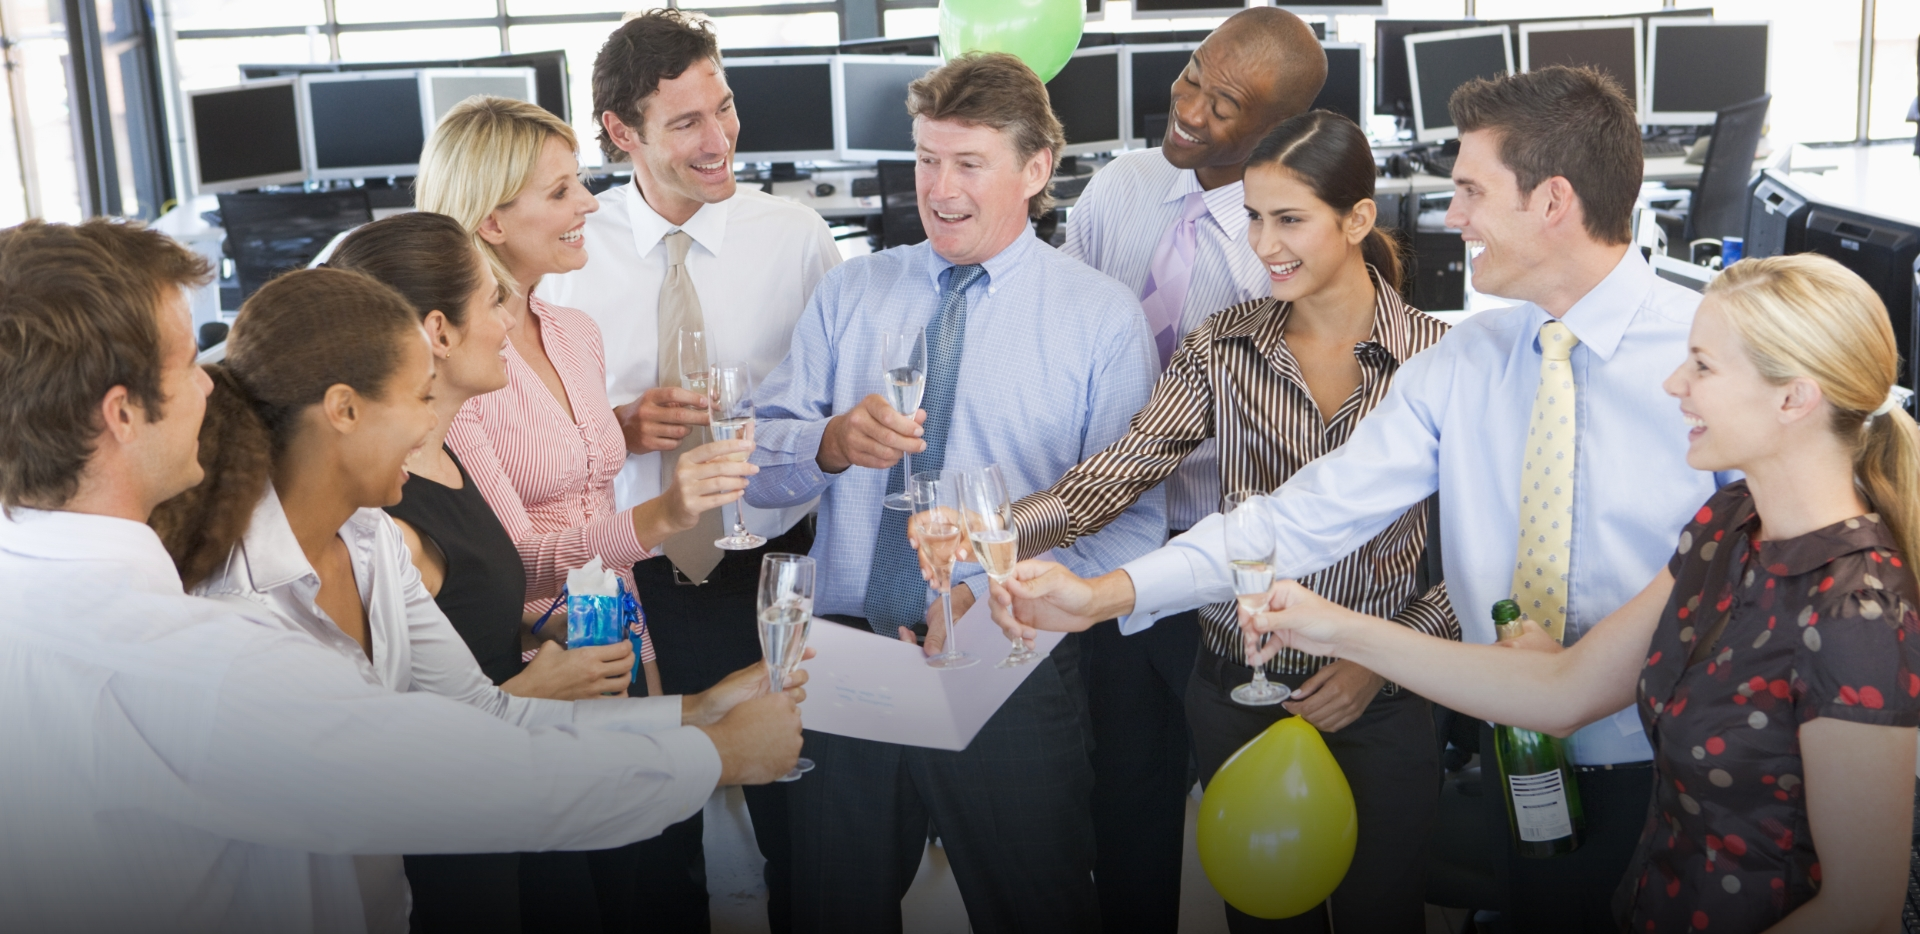 corporate team at work pops bottle of champagne to celebrate a big deal